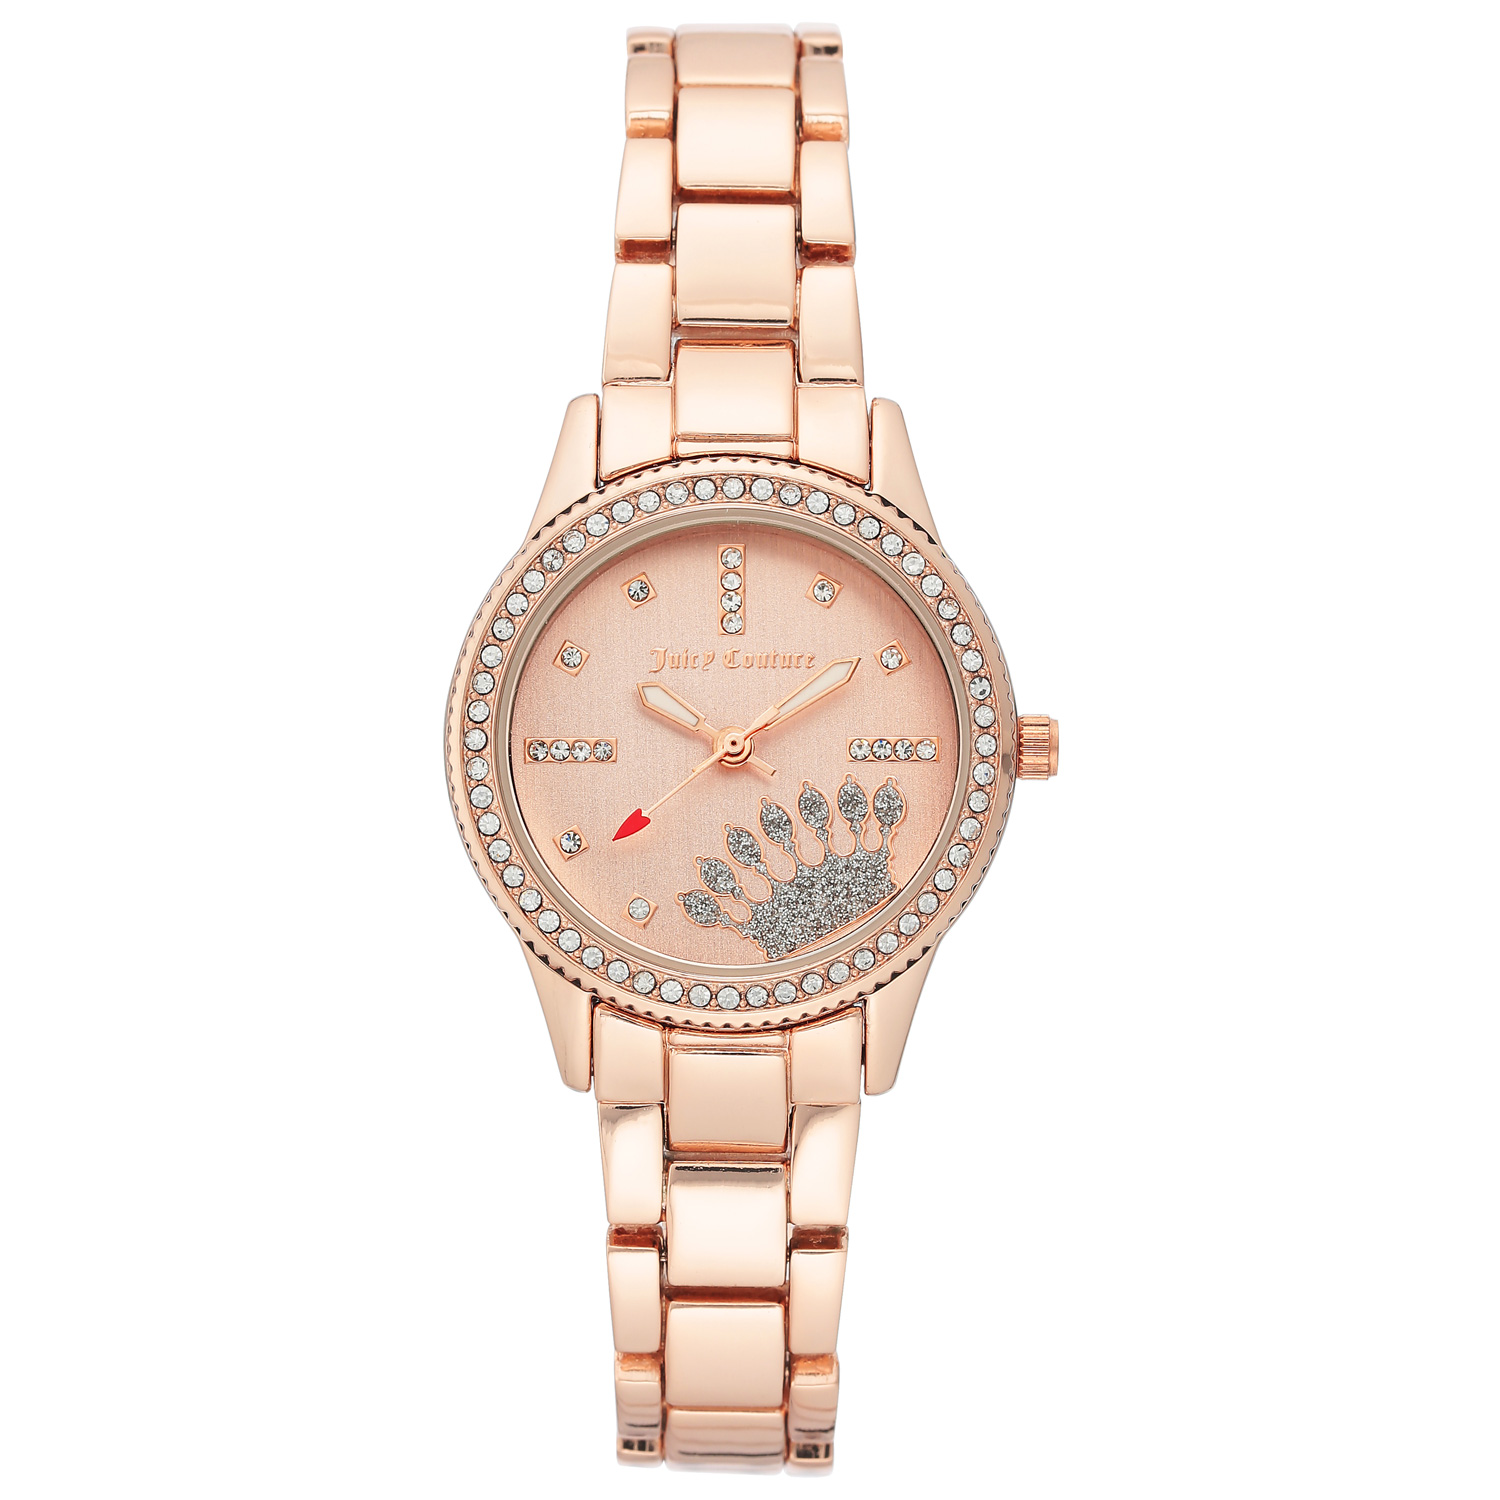 Juicy Couture Watch JC/1110RGRG Rose Gold